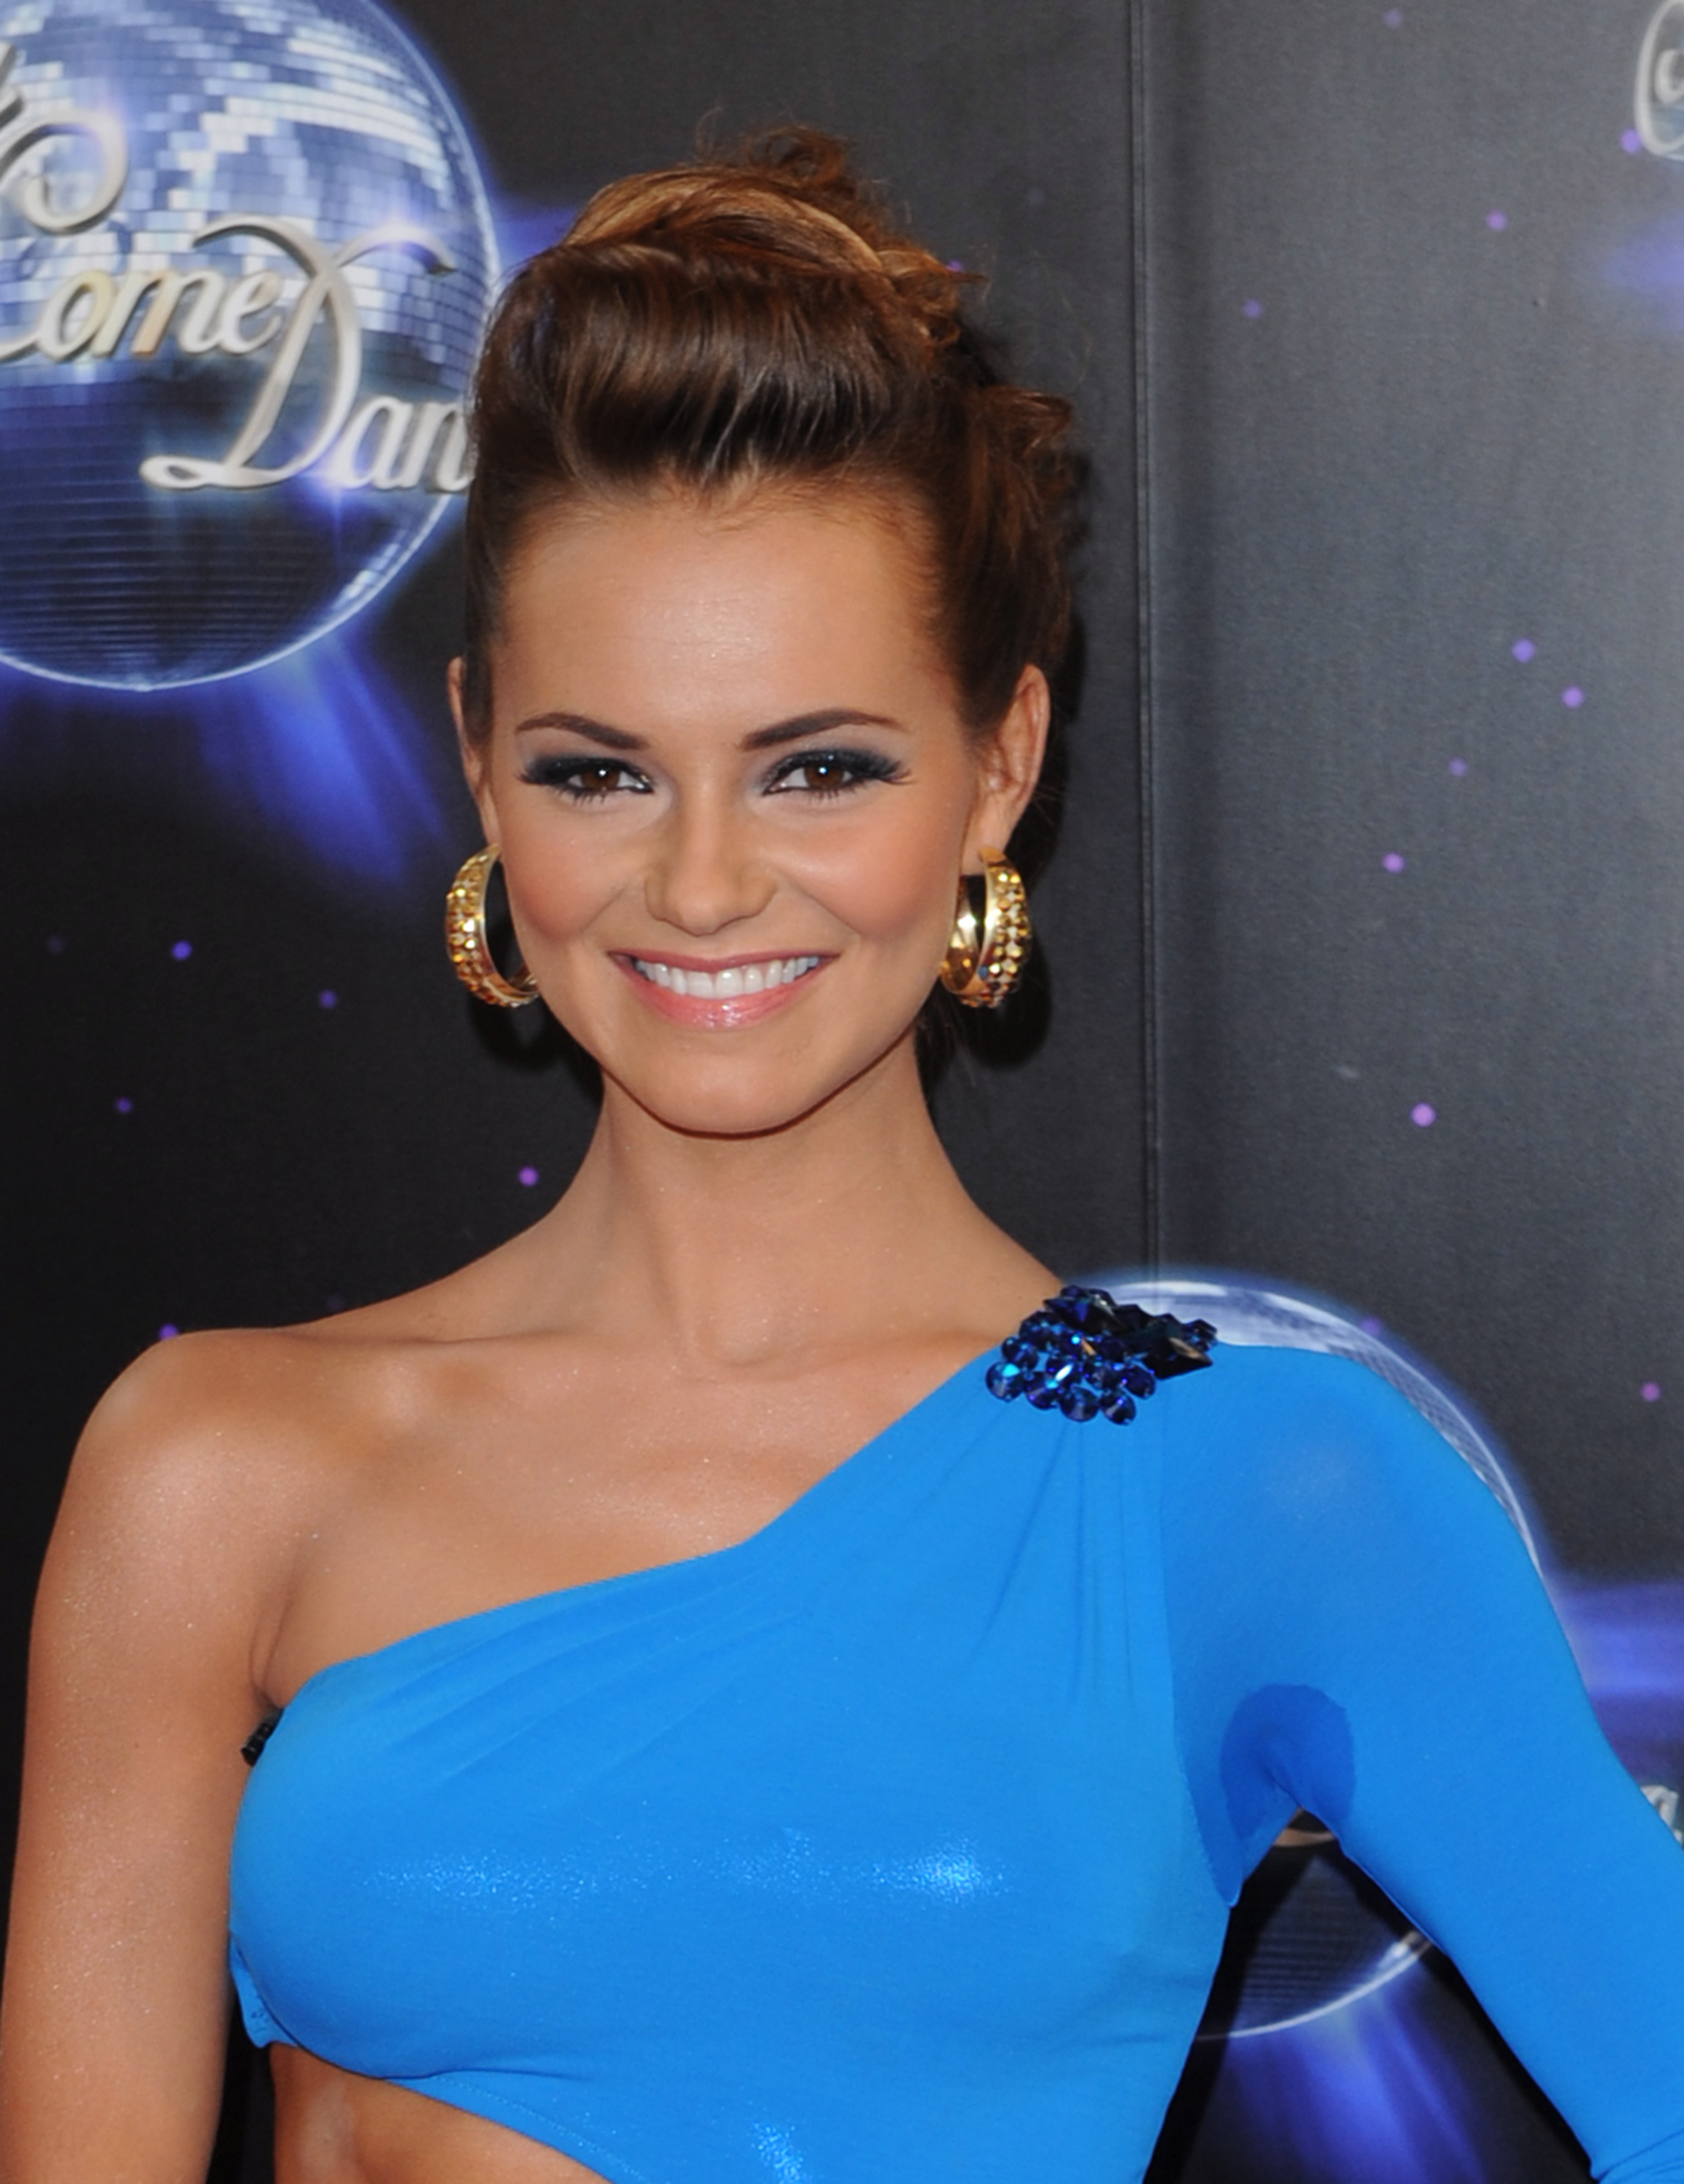 Kara S Party Ideas Easy Fun Easter Crafts For Kids Egg: Strictly's Kara Tointon: 'I Felt Stupid At School'